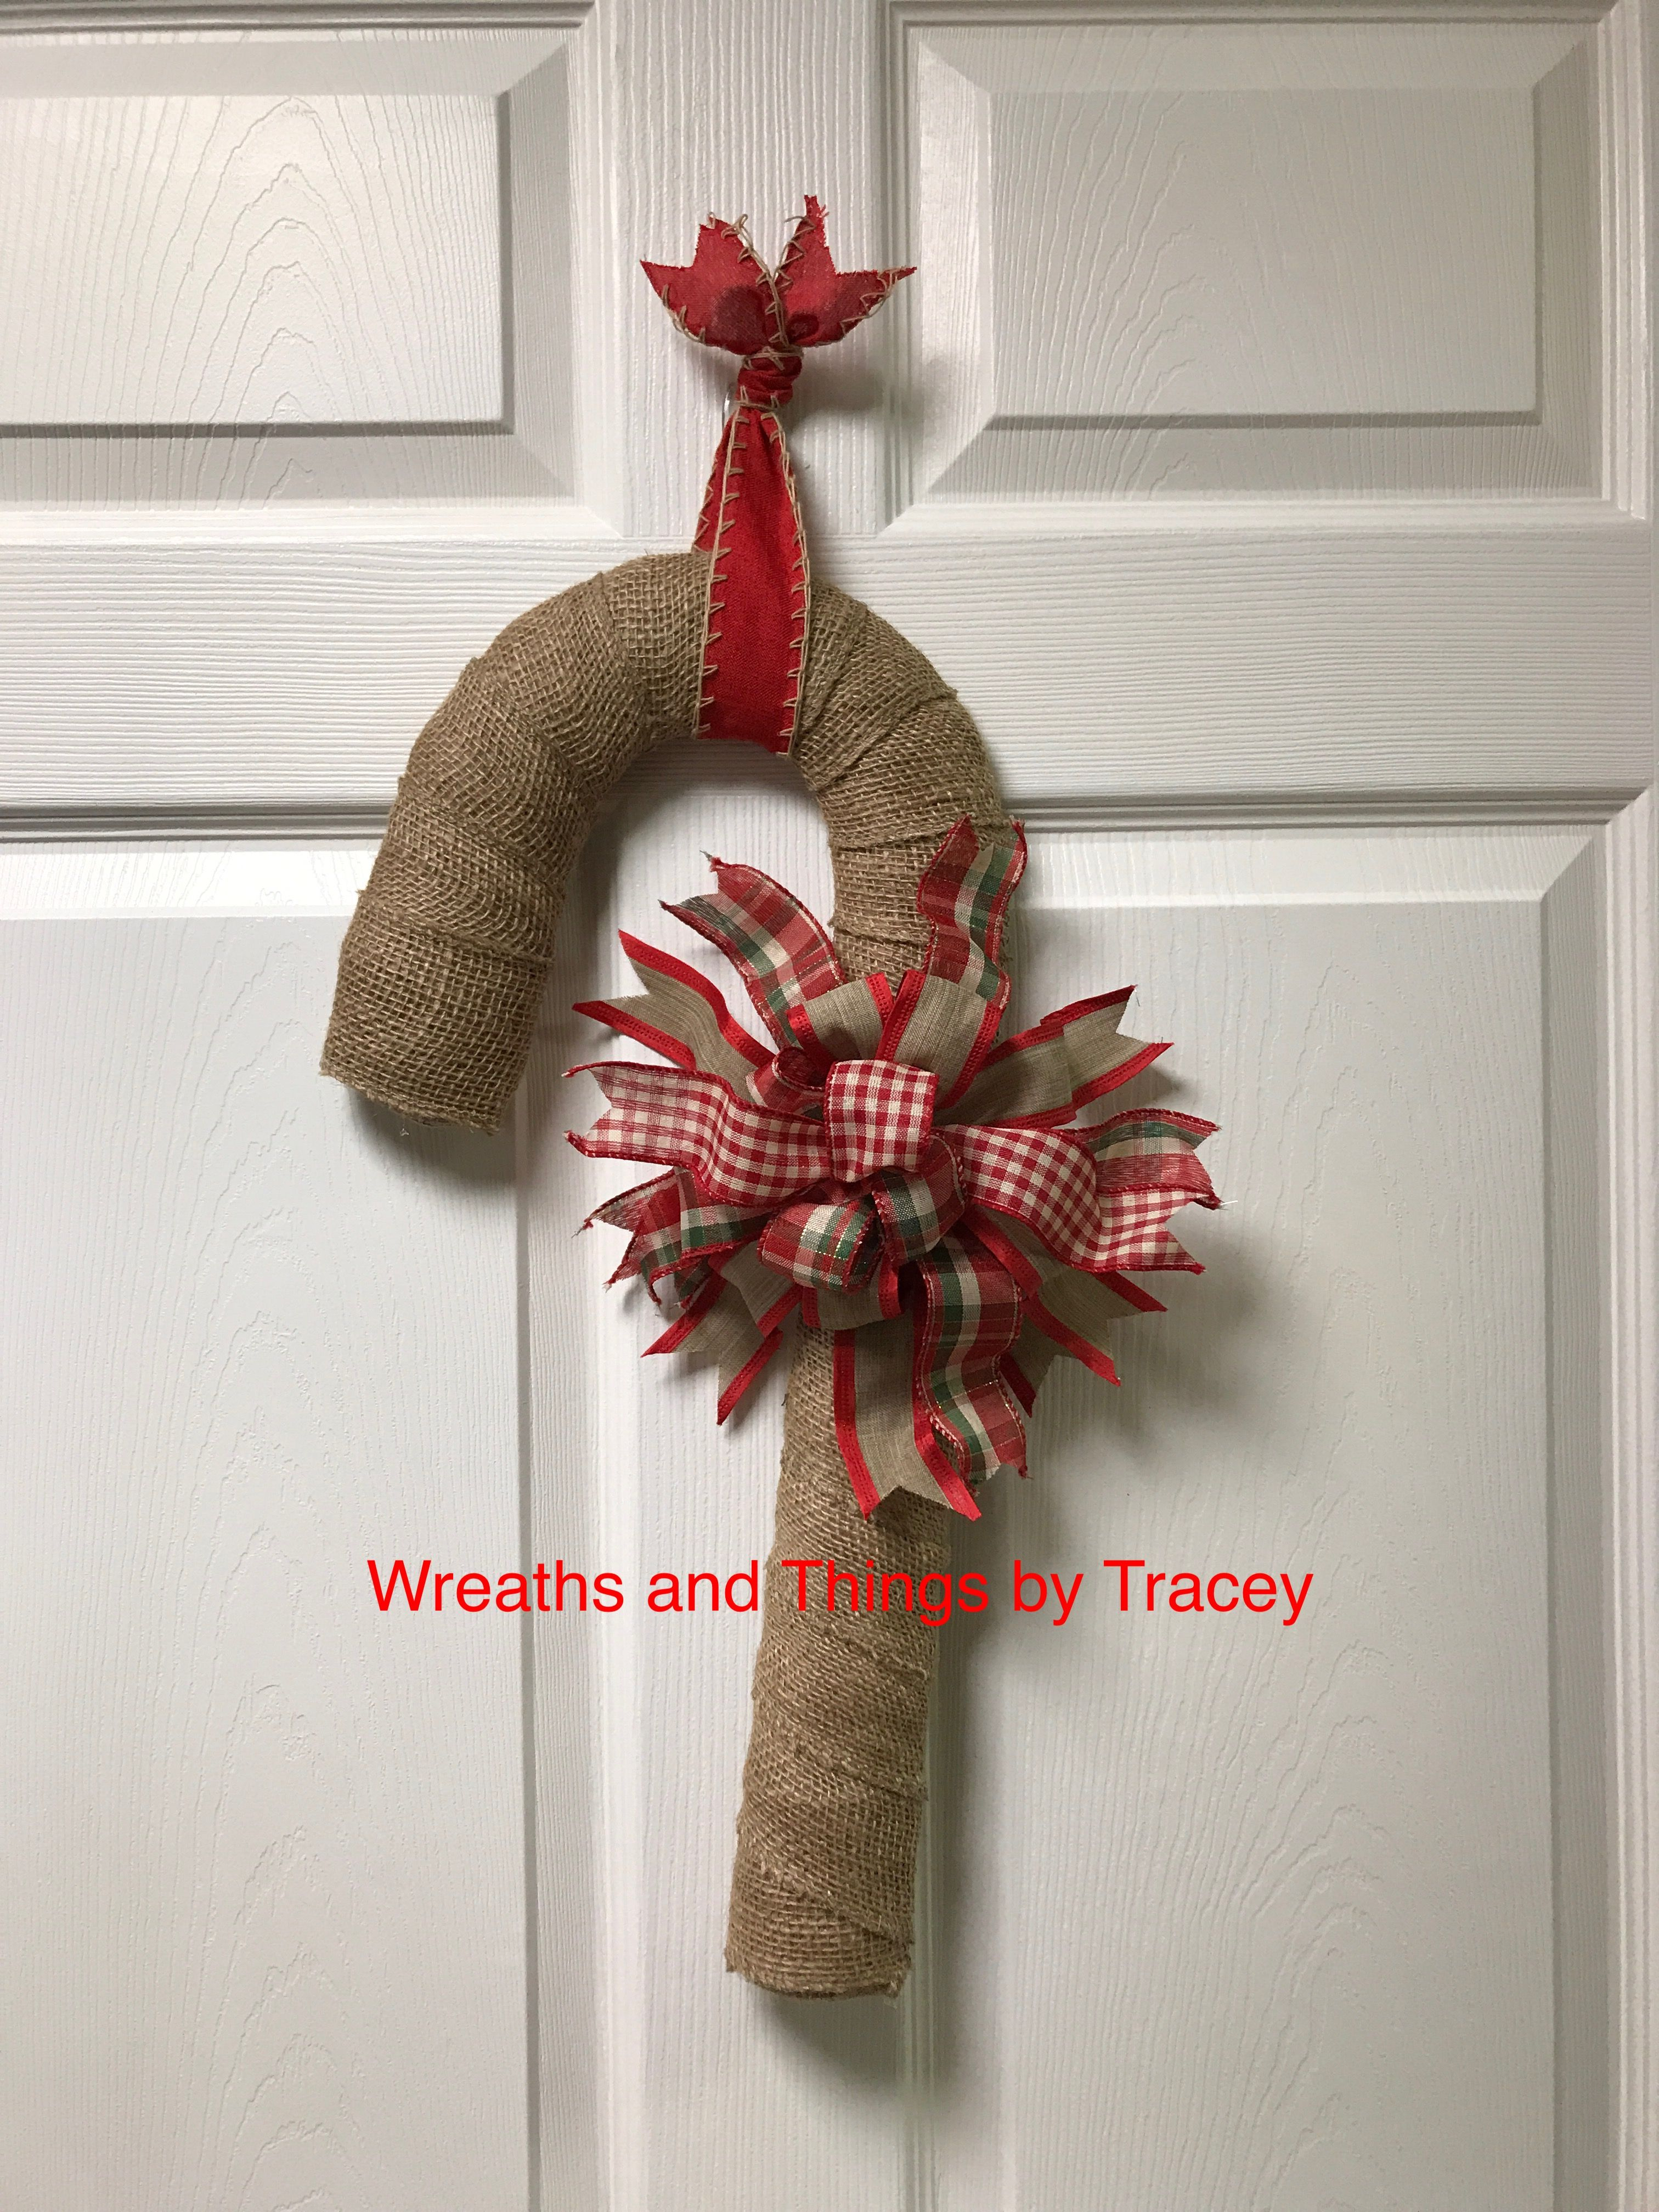 Candy Cane Burlap - 2017 - Wreaths and Things by Tracey & Candy Cane Burlap - 2017 - Wreaths and Things by Tracey | Wreaths ... pezcame.com